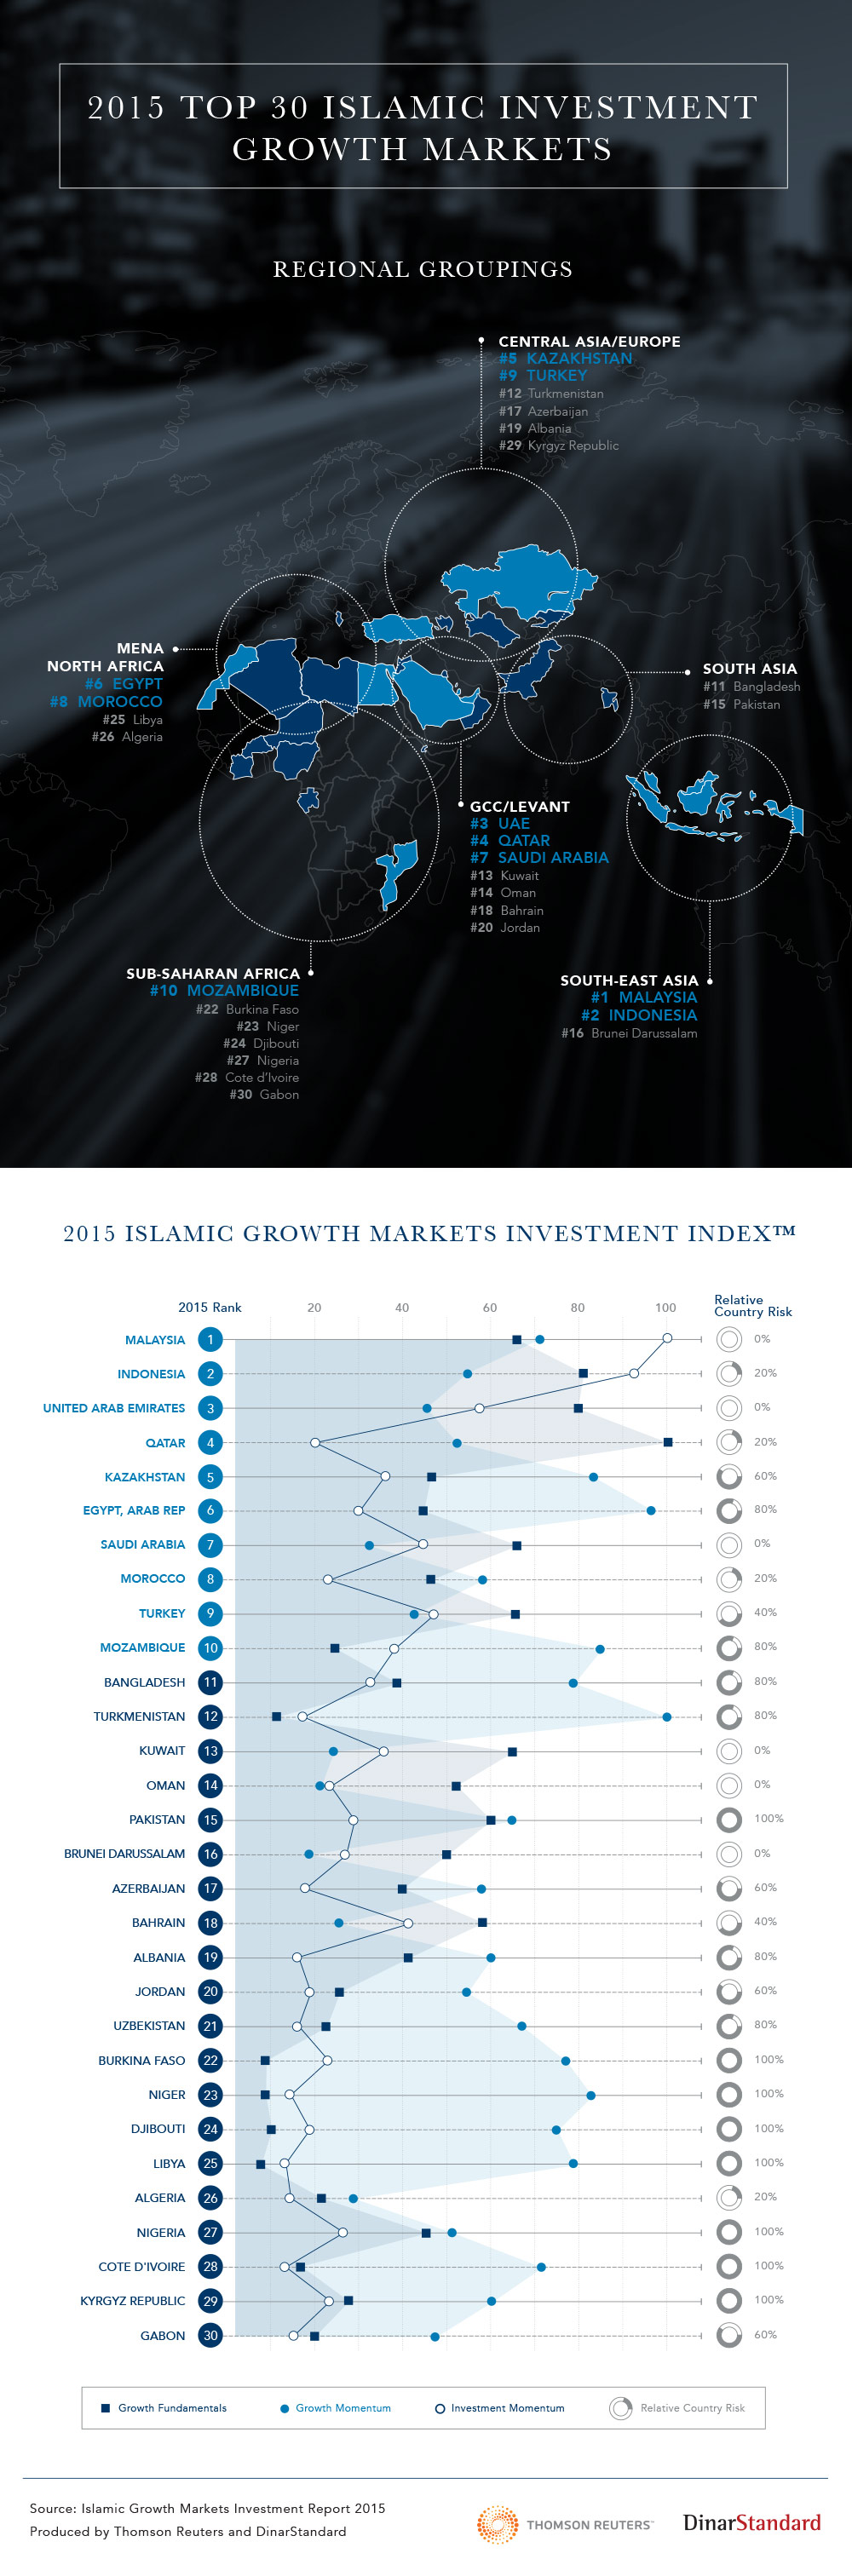 2015 Top 30 Islamic Investment Growth Markets